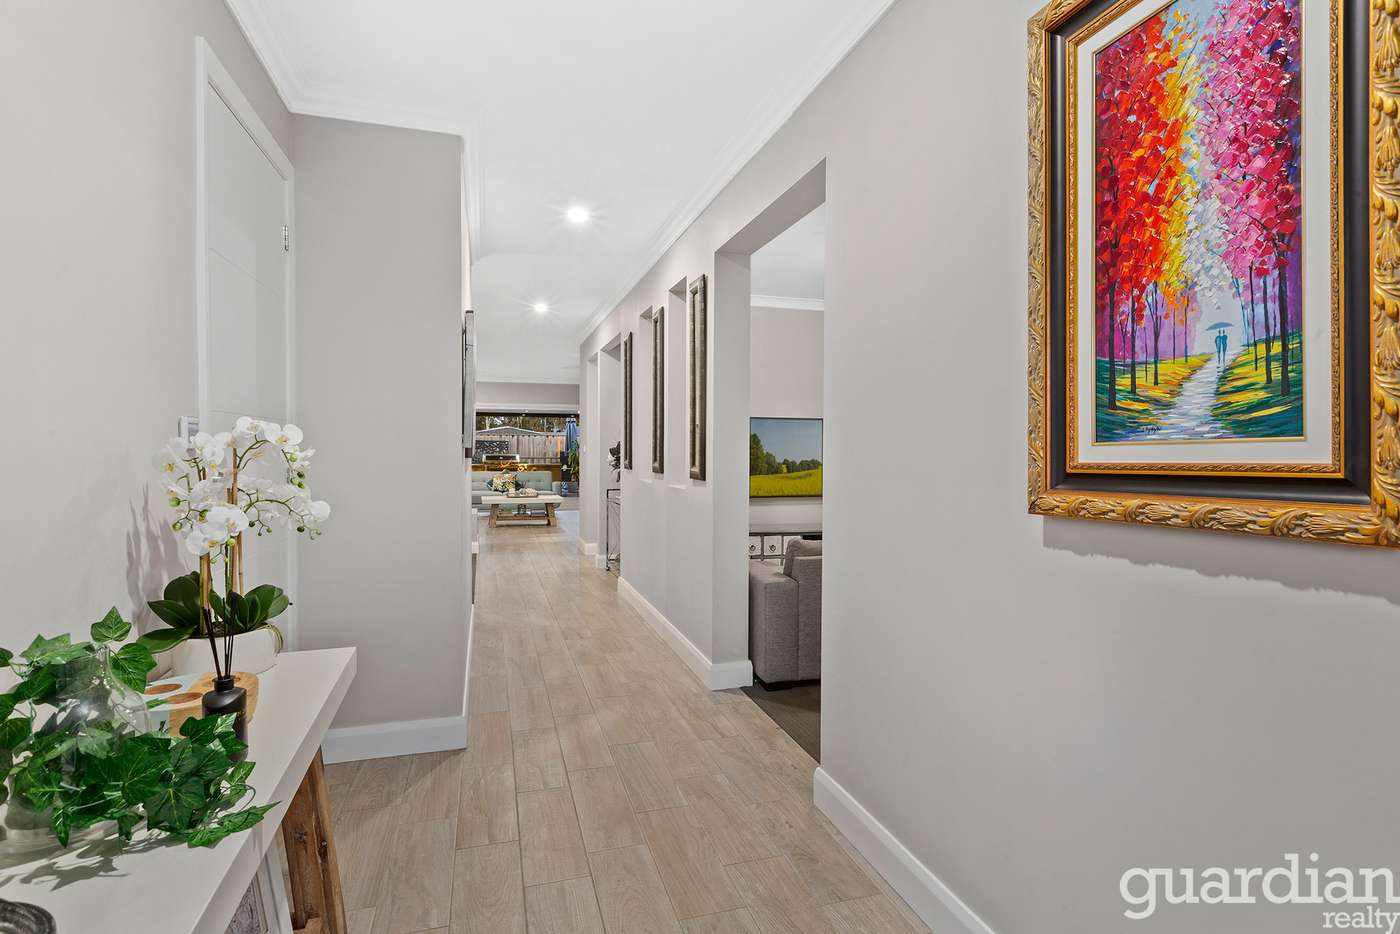 Sixth view of Homely house listing, 4 Cherry Street, Pitt Town NSW 2756